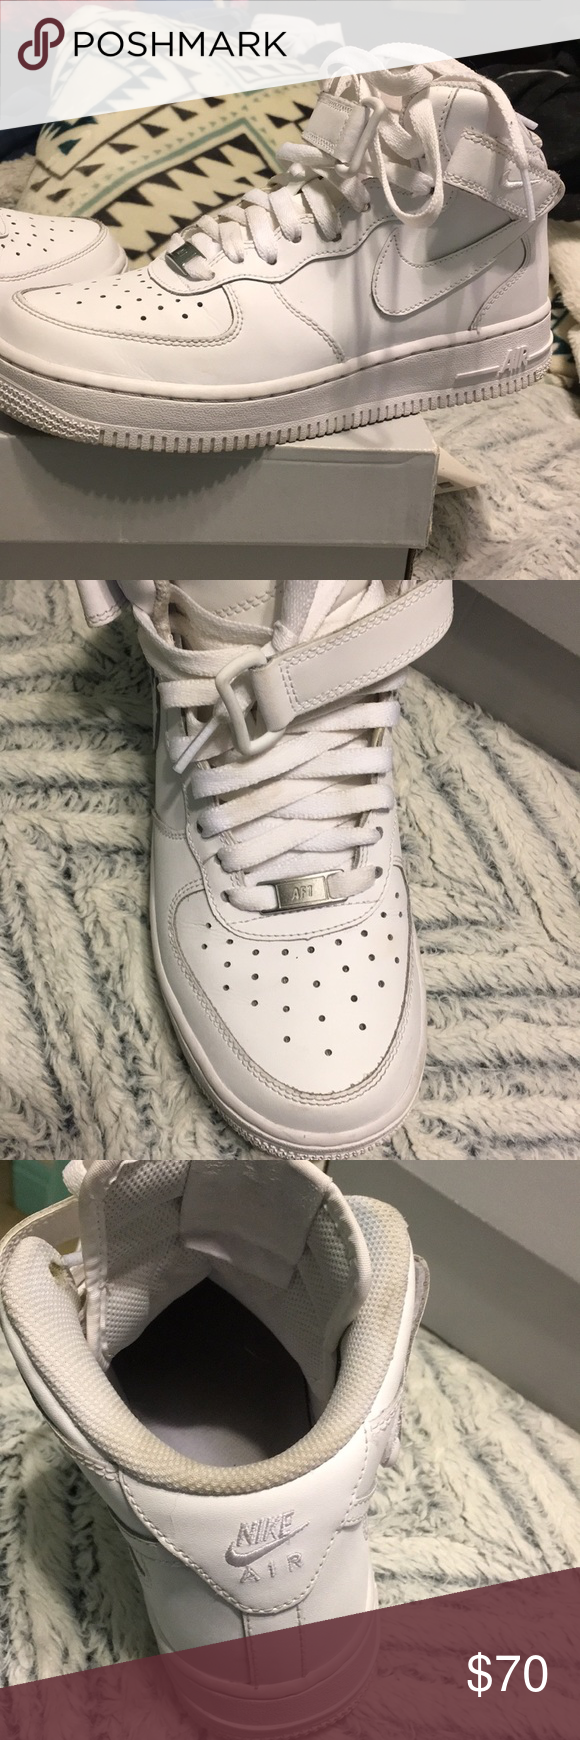 buy popular 8151c 4a2c7 Nike Air Force 1 mid (GS) Thease shoes are in great condition barely  creased, size 5.5 in girls grade school. Nike Shoes Sneakers